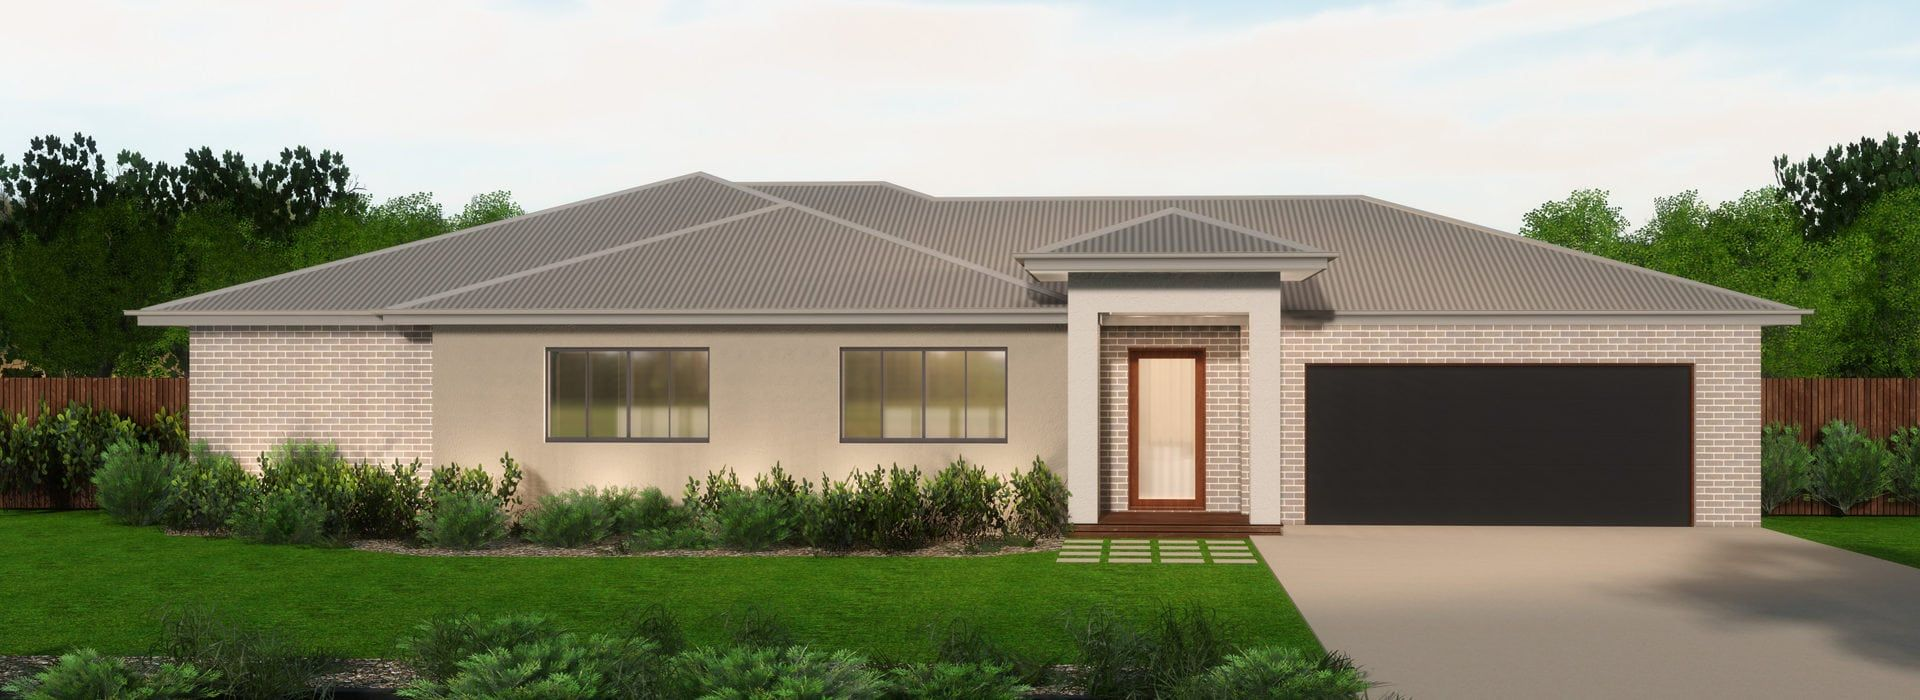 Lot 4 First Avenue, Marsden QLD 4132, Image 0